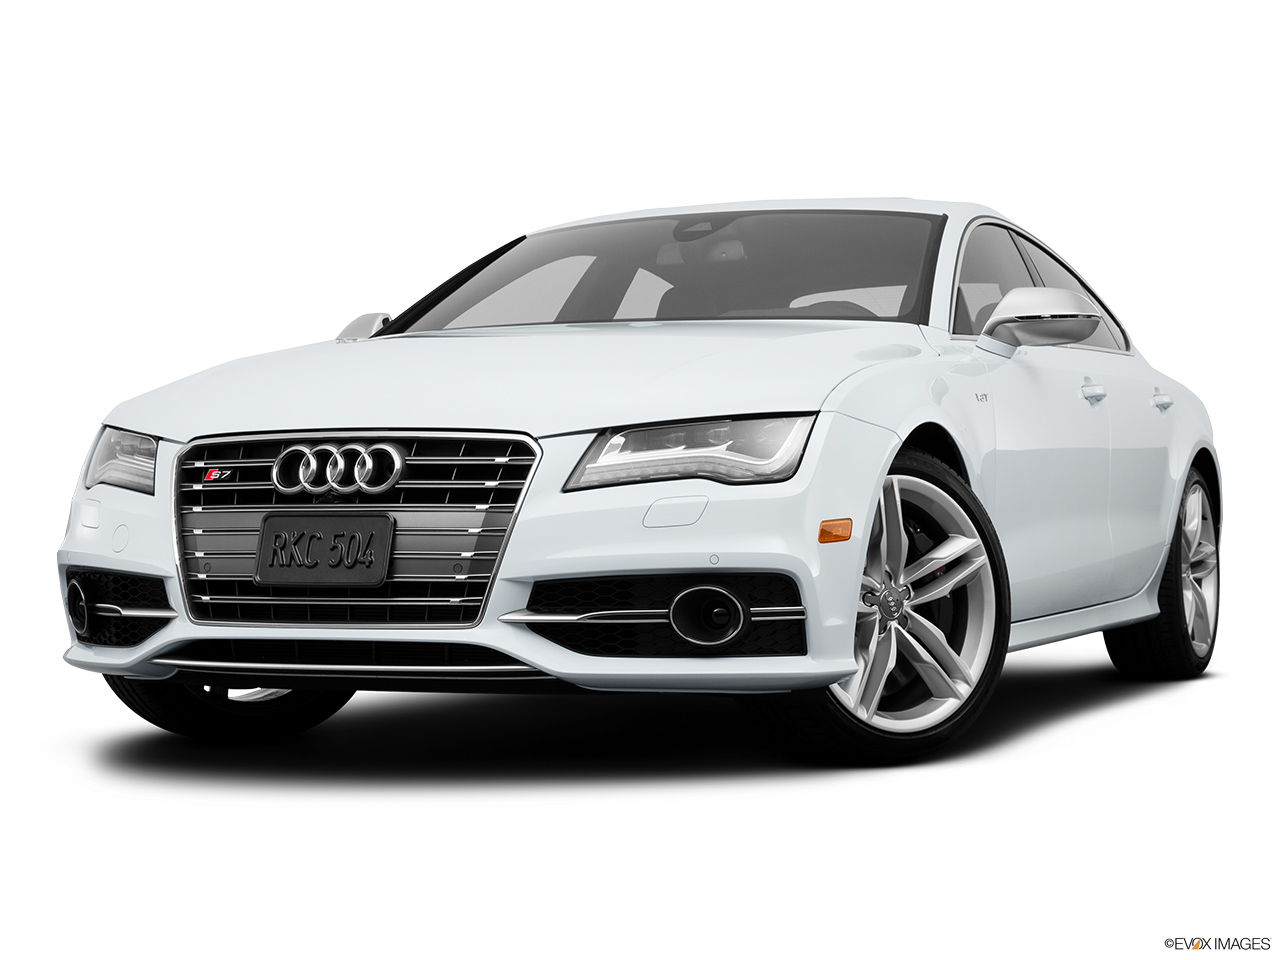 2015 Audi S7 Hatchback Front Angle View Low Wide